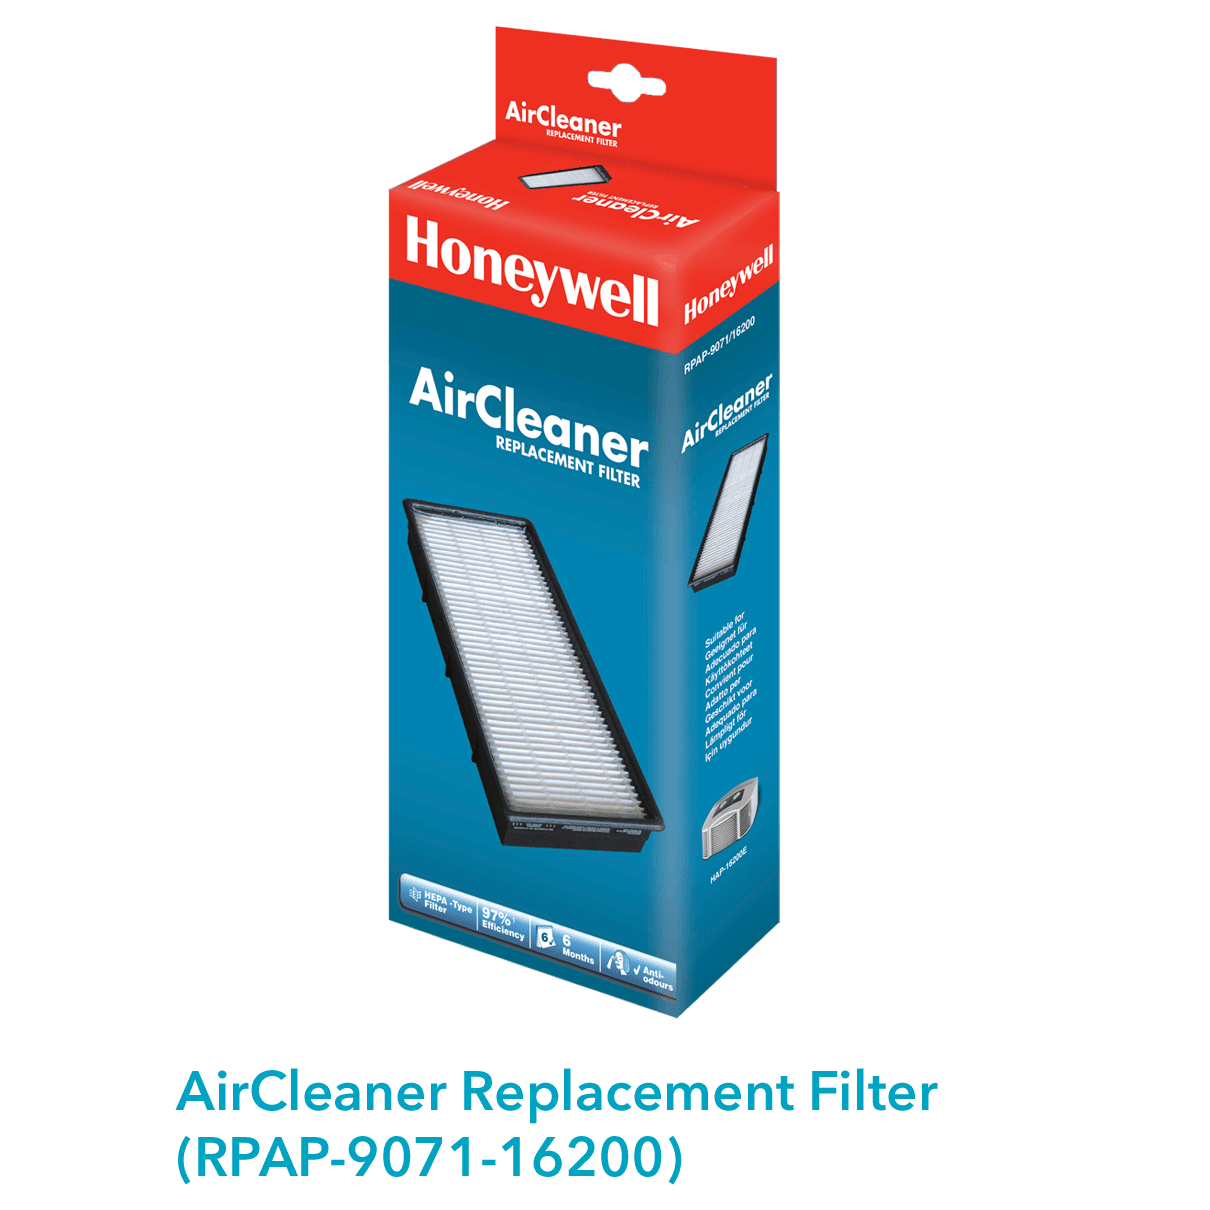 Aircleaner replacement